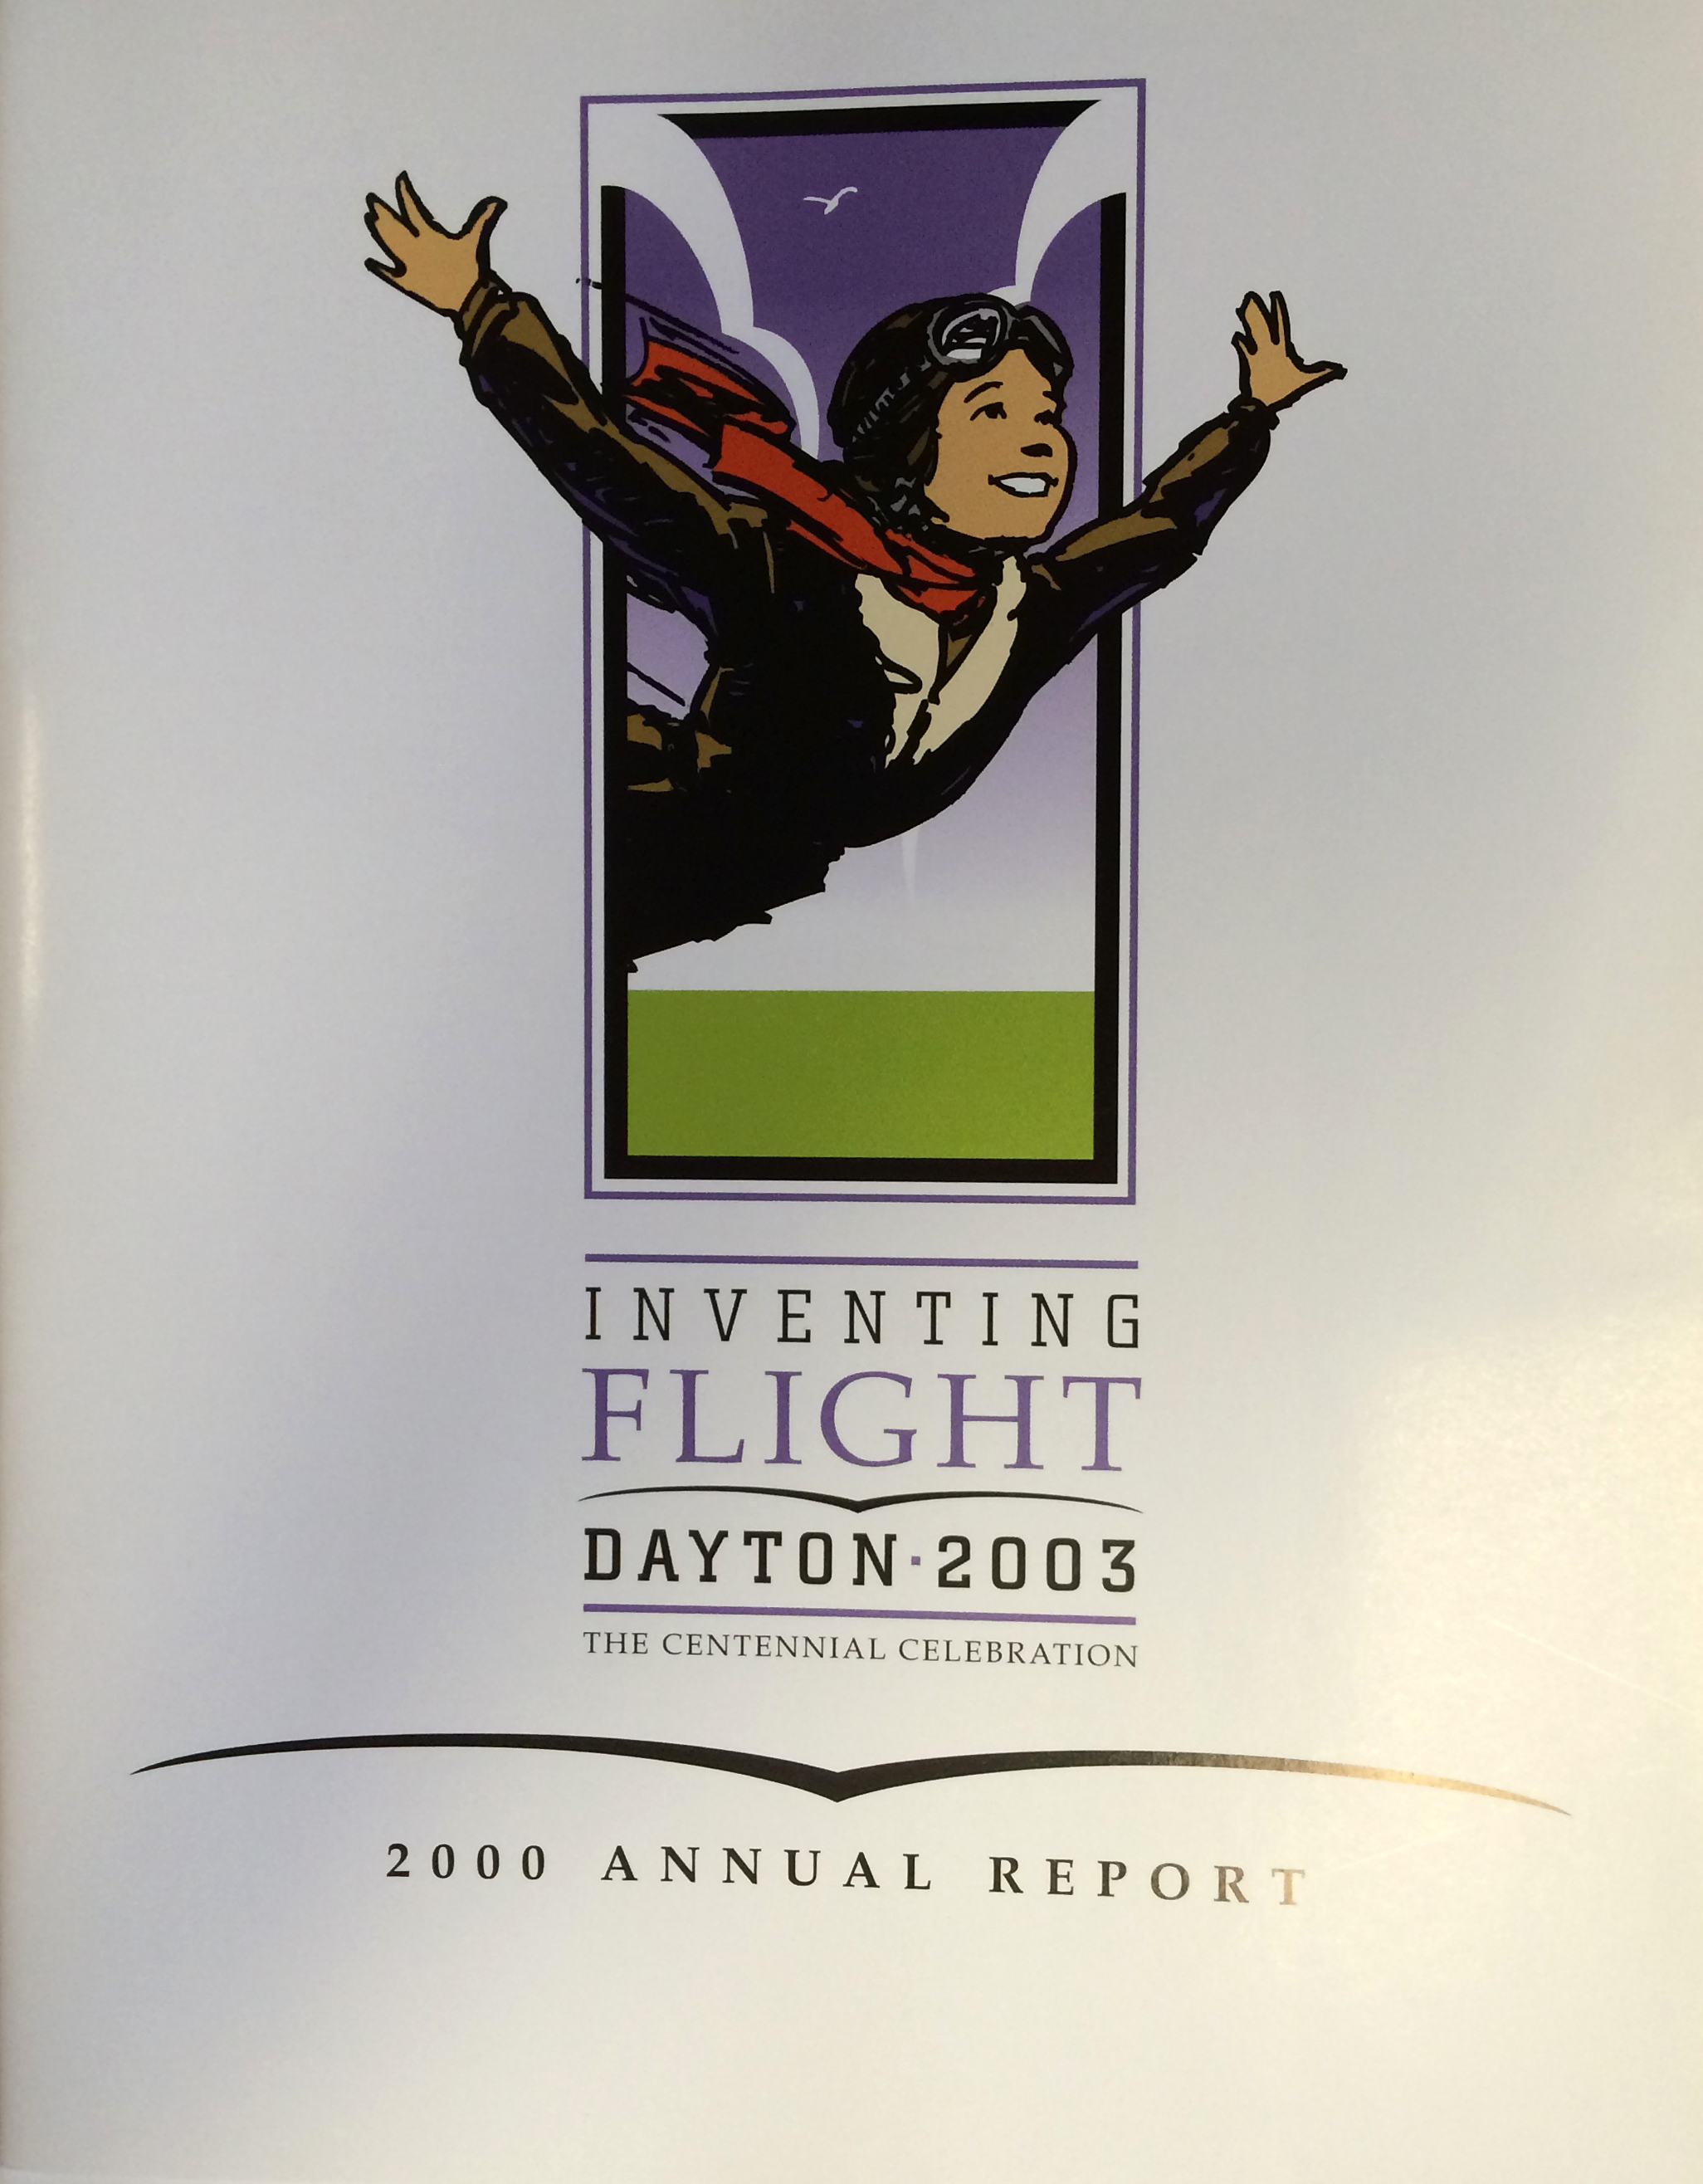 Inventing Flight Annual Report, 2000 (MS-483, Tillson Collection, Box 1, File 4)